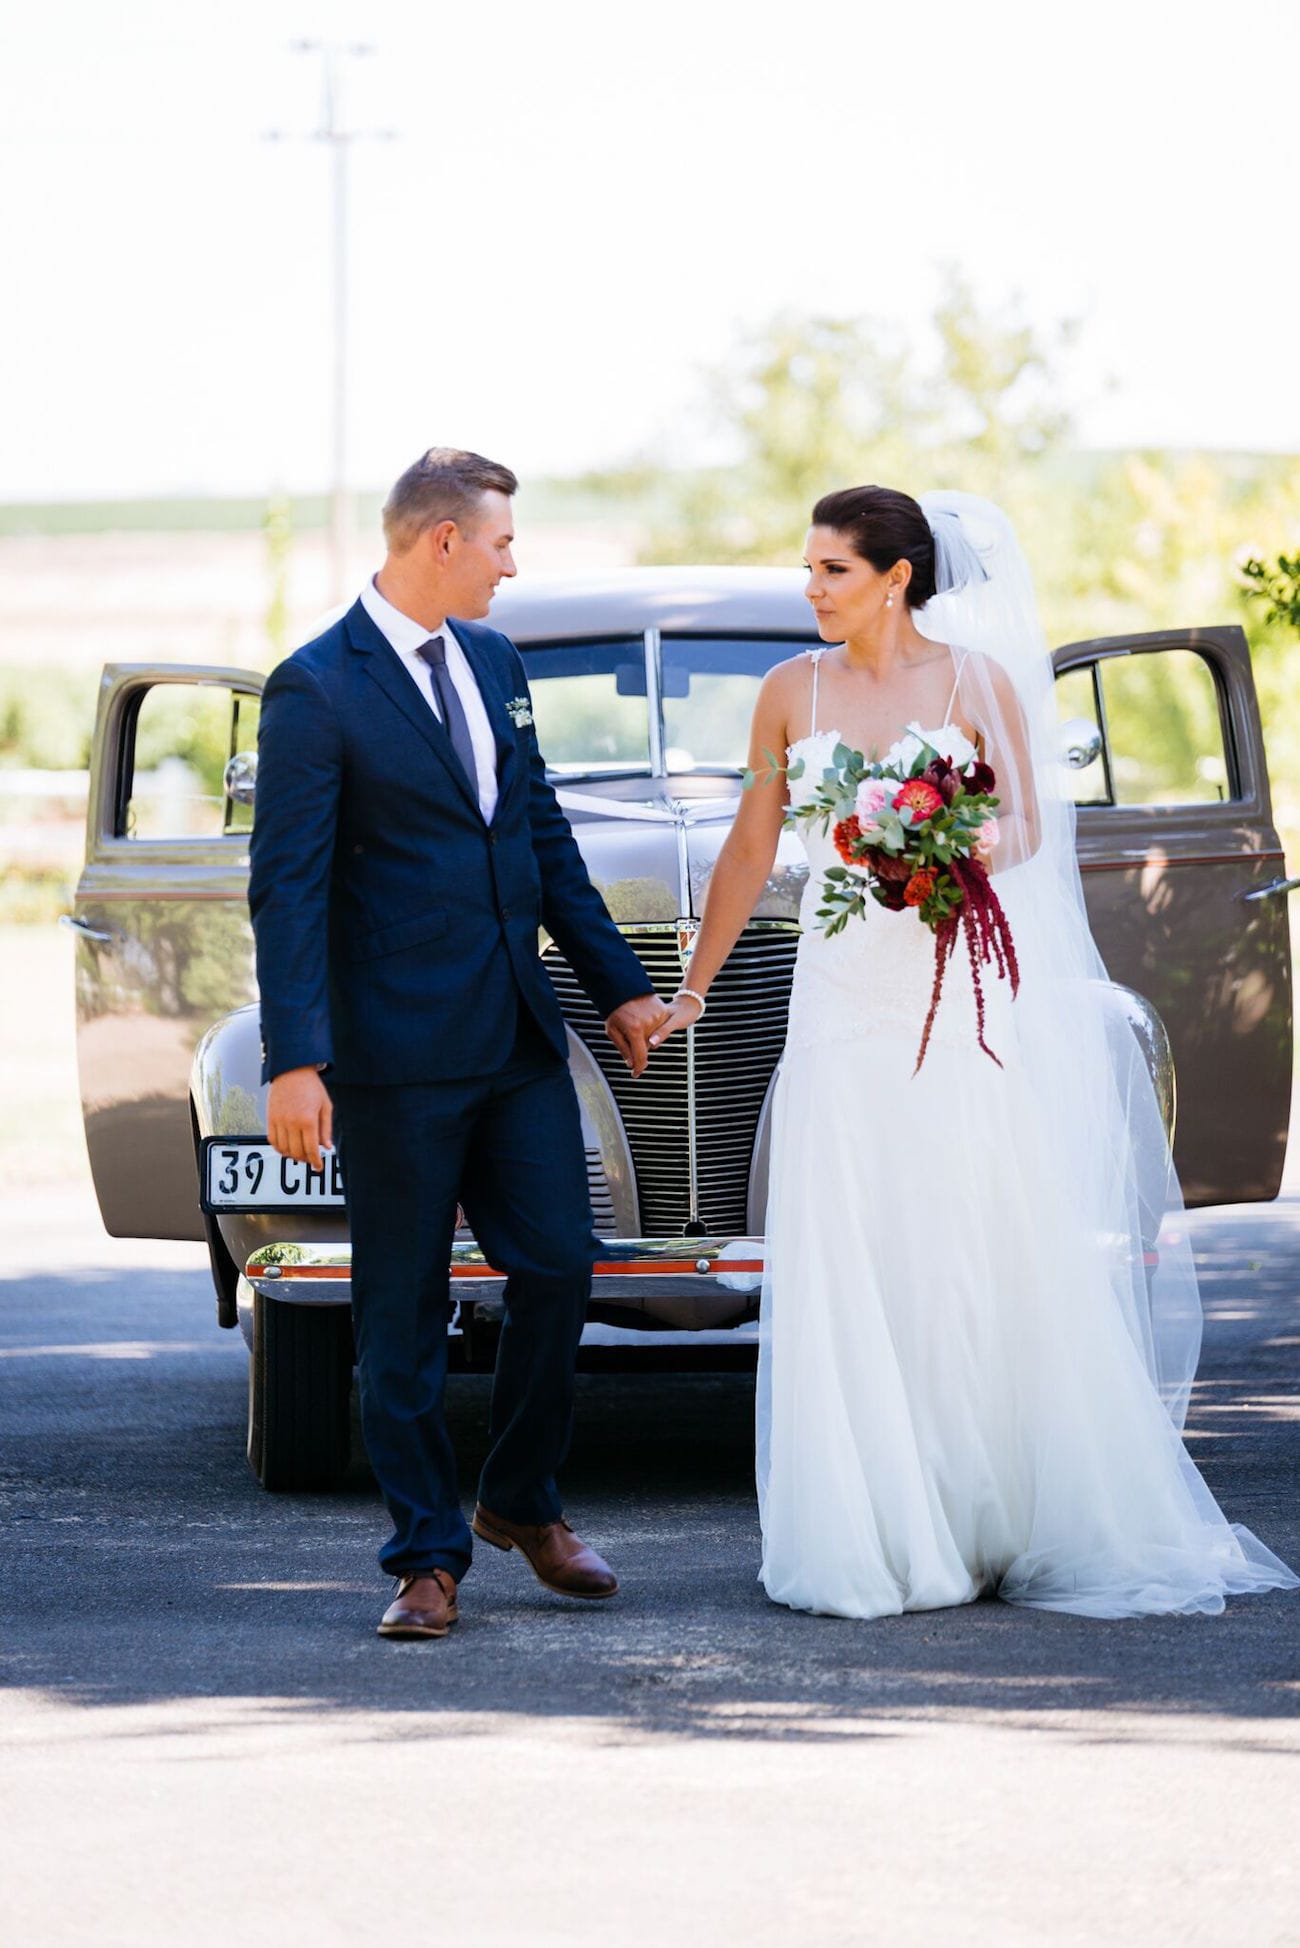 Bride & Groom with Vintage Car | Credit: Matthew Carr